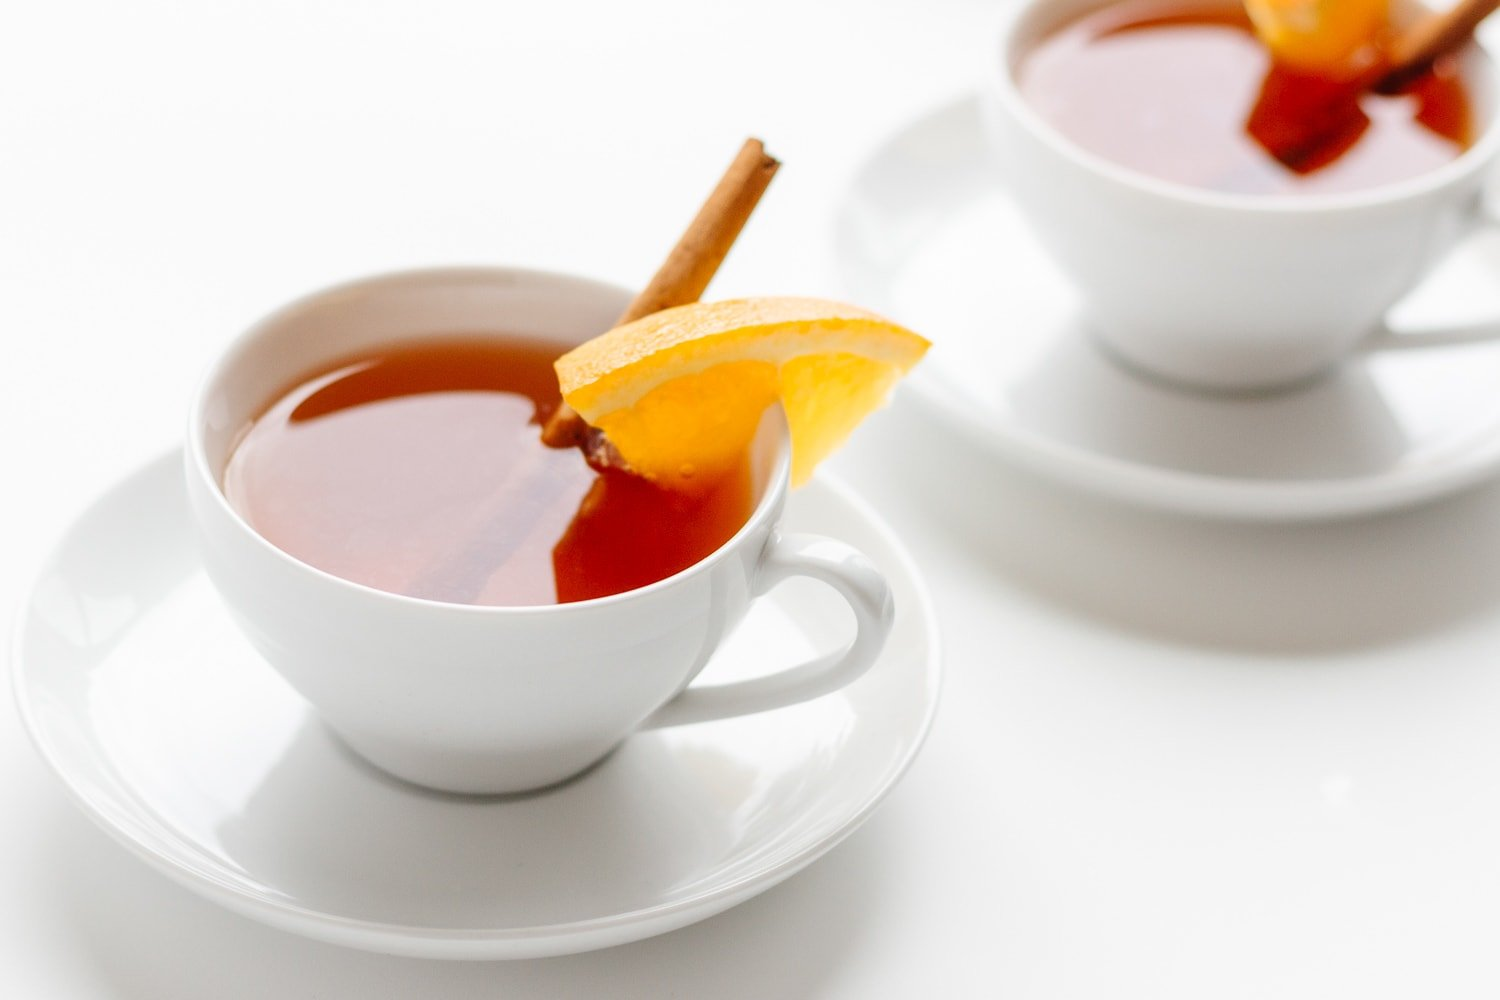 Two white tea cups filled with Orange |Spice Mulled Tea